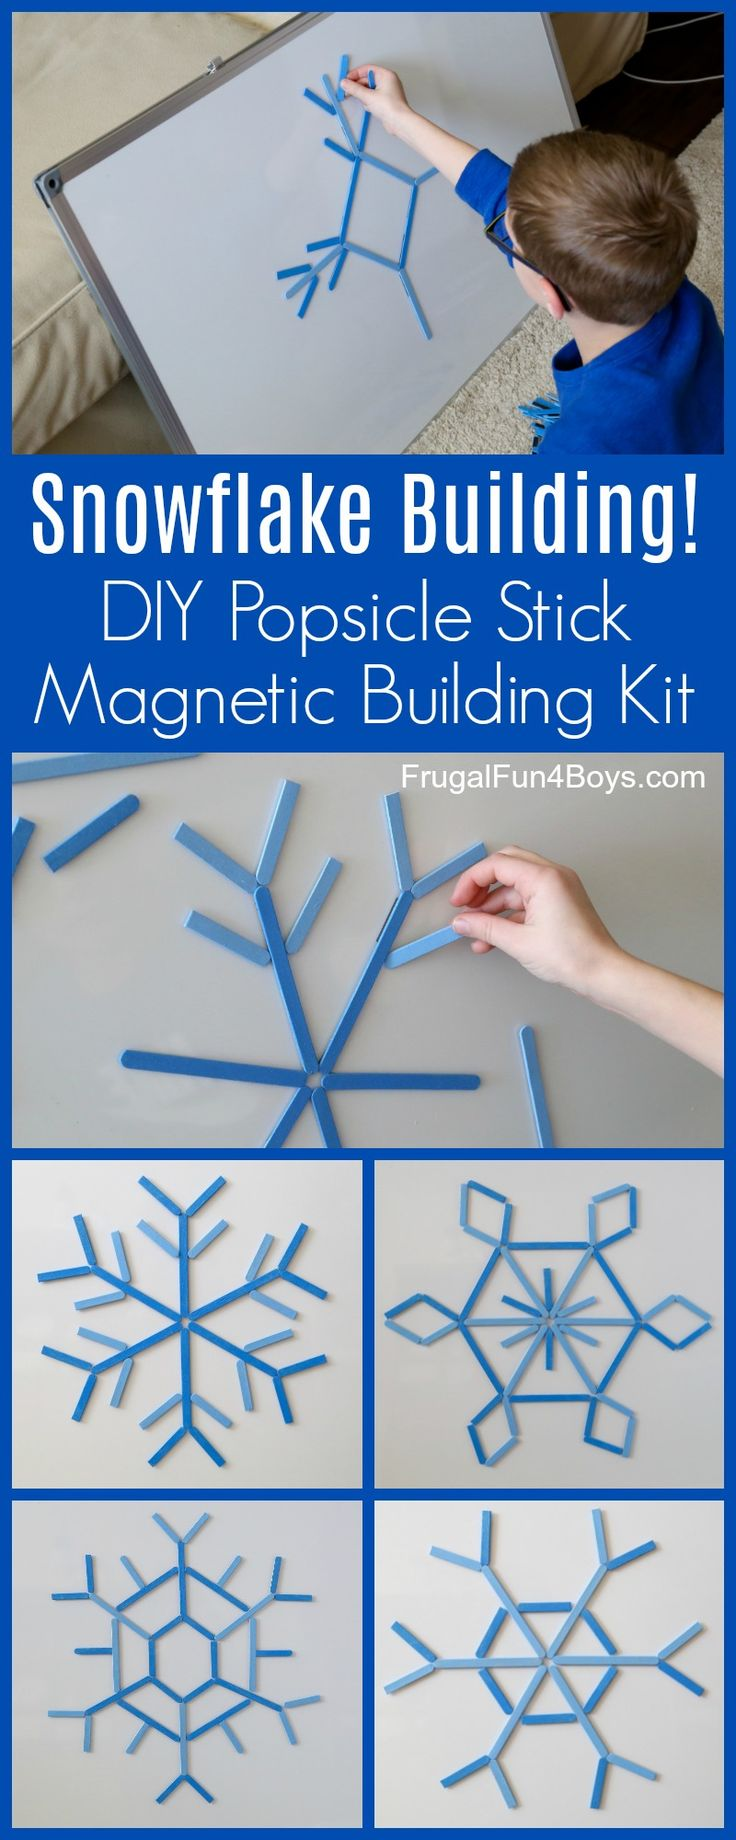 Make a DIY Popsicle Stick Snowflake Building Kit - Fun winter themed STEM activity for kids